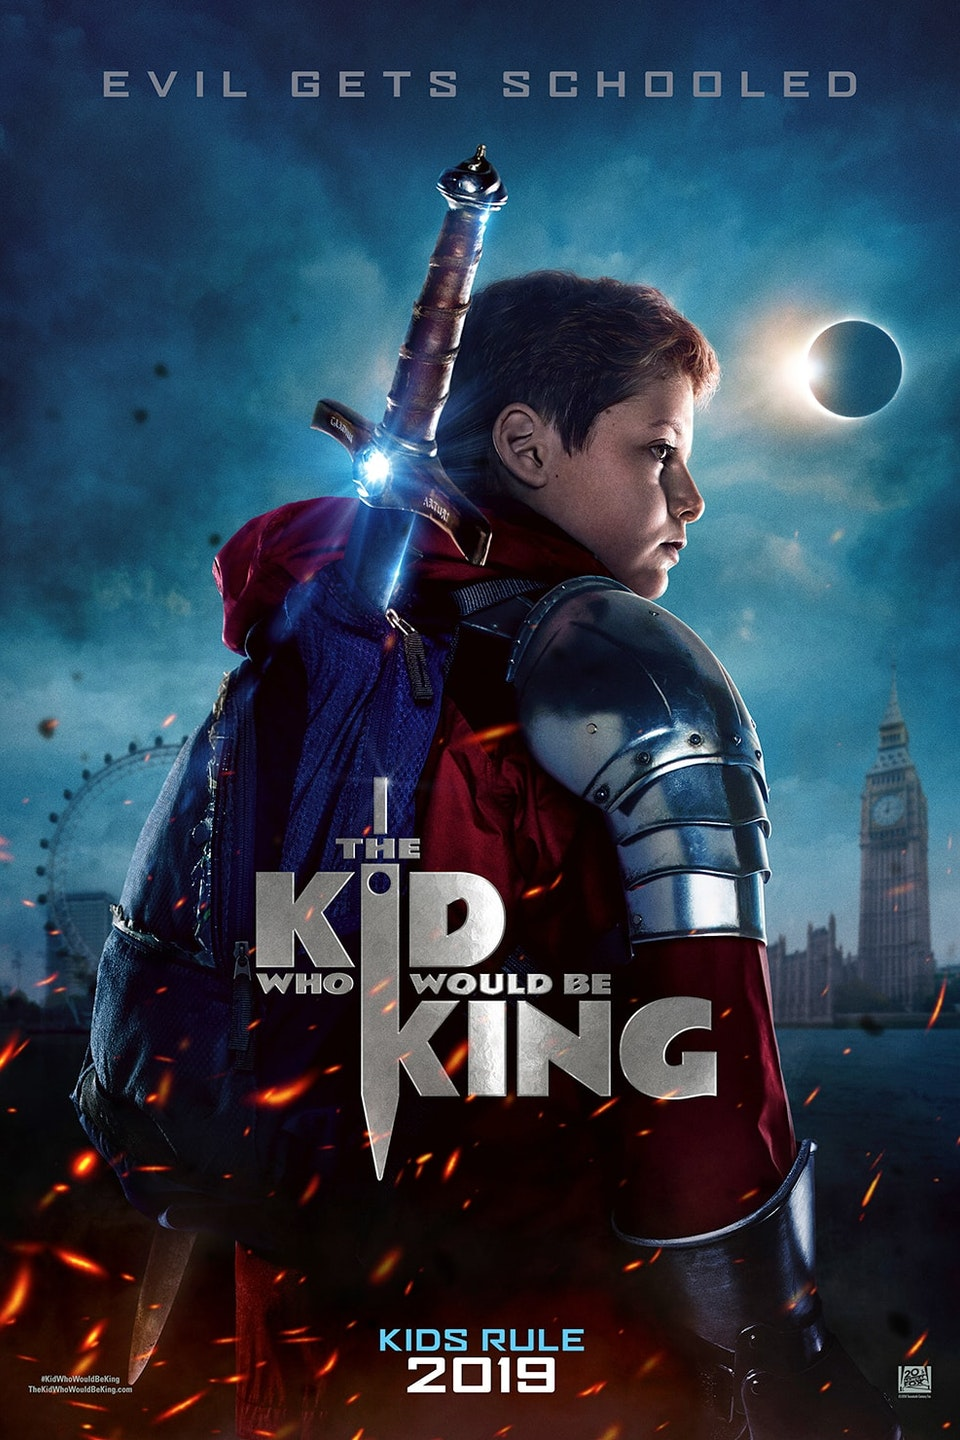 Glassworks - The Kid Who Would Be King (2019) | Director Joe Cornish